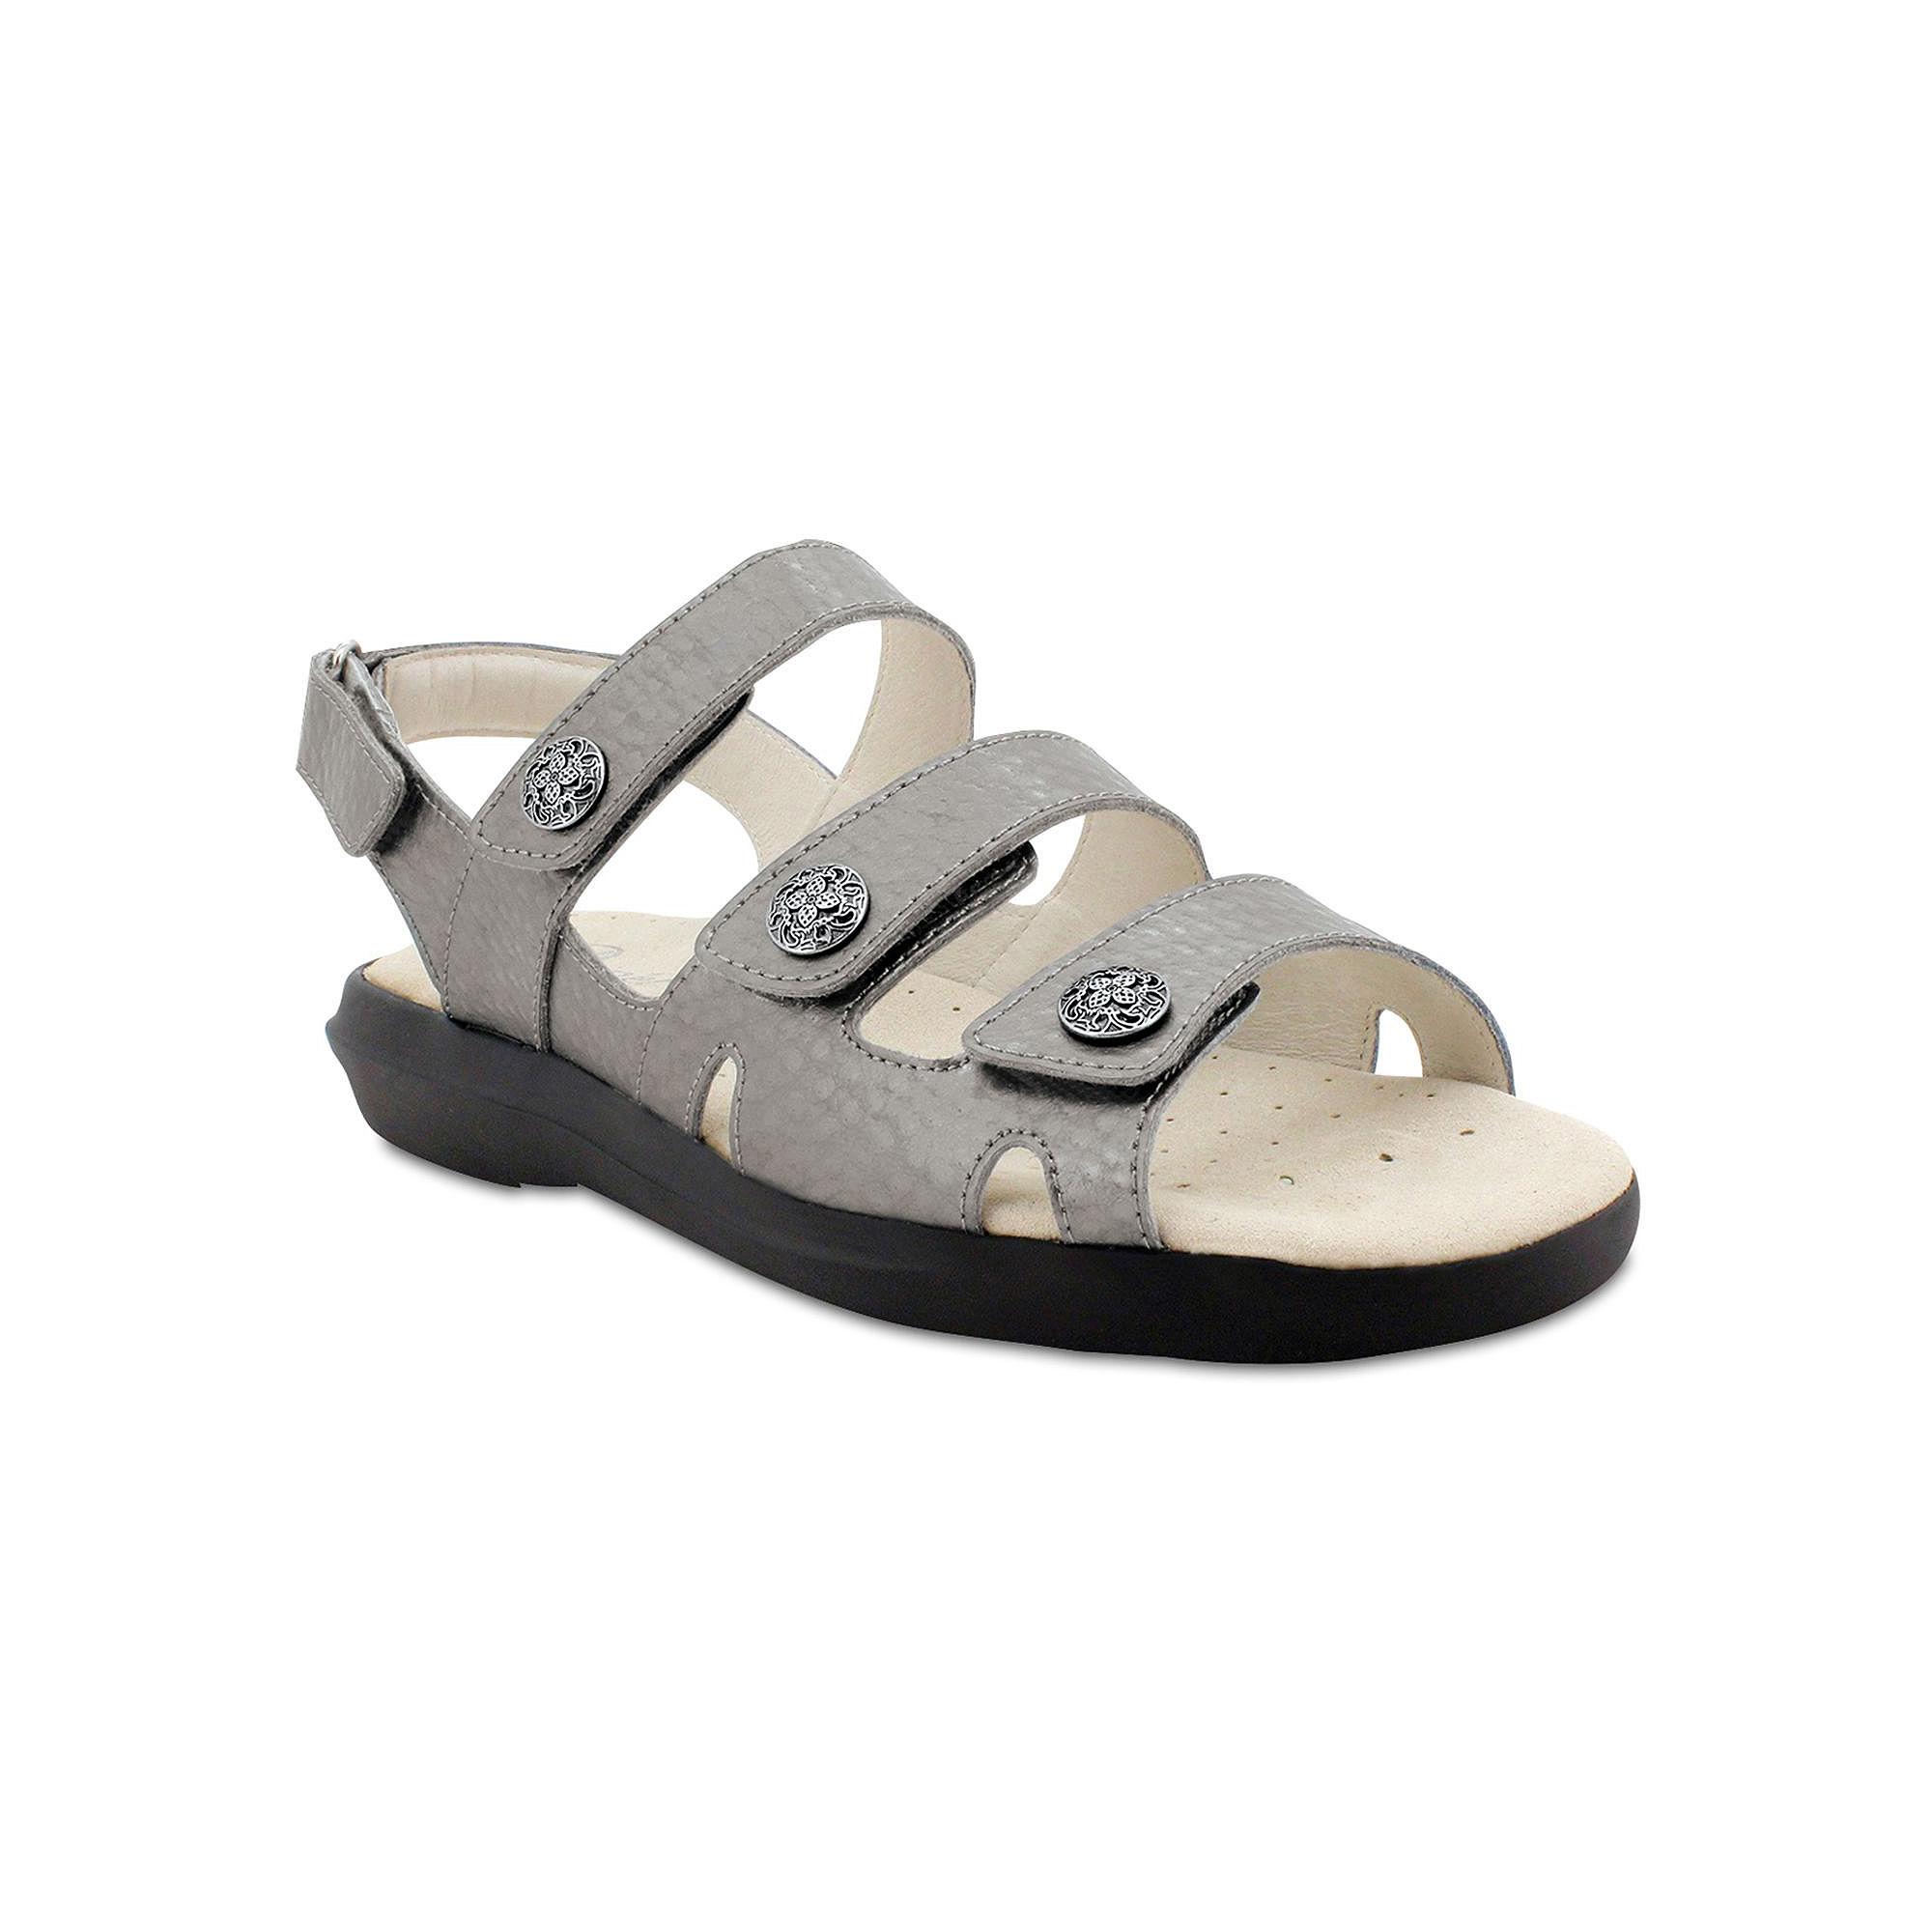 Propet Bahama Womens Leather Sandals